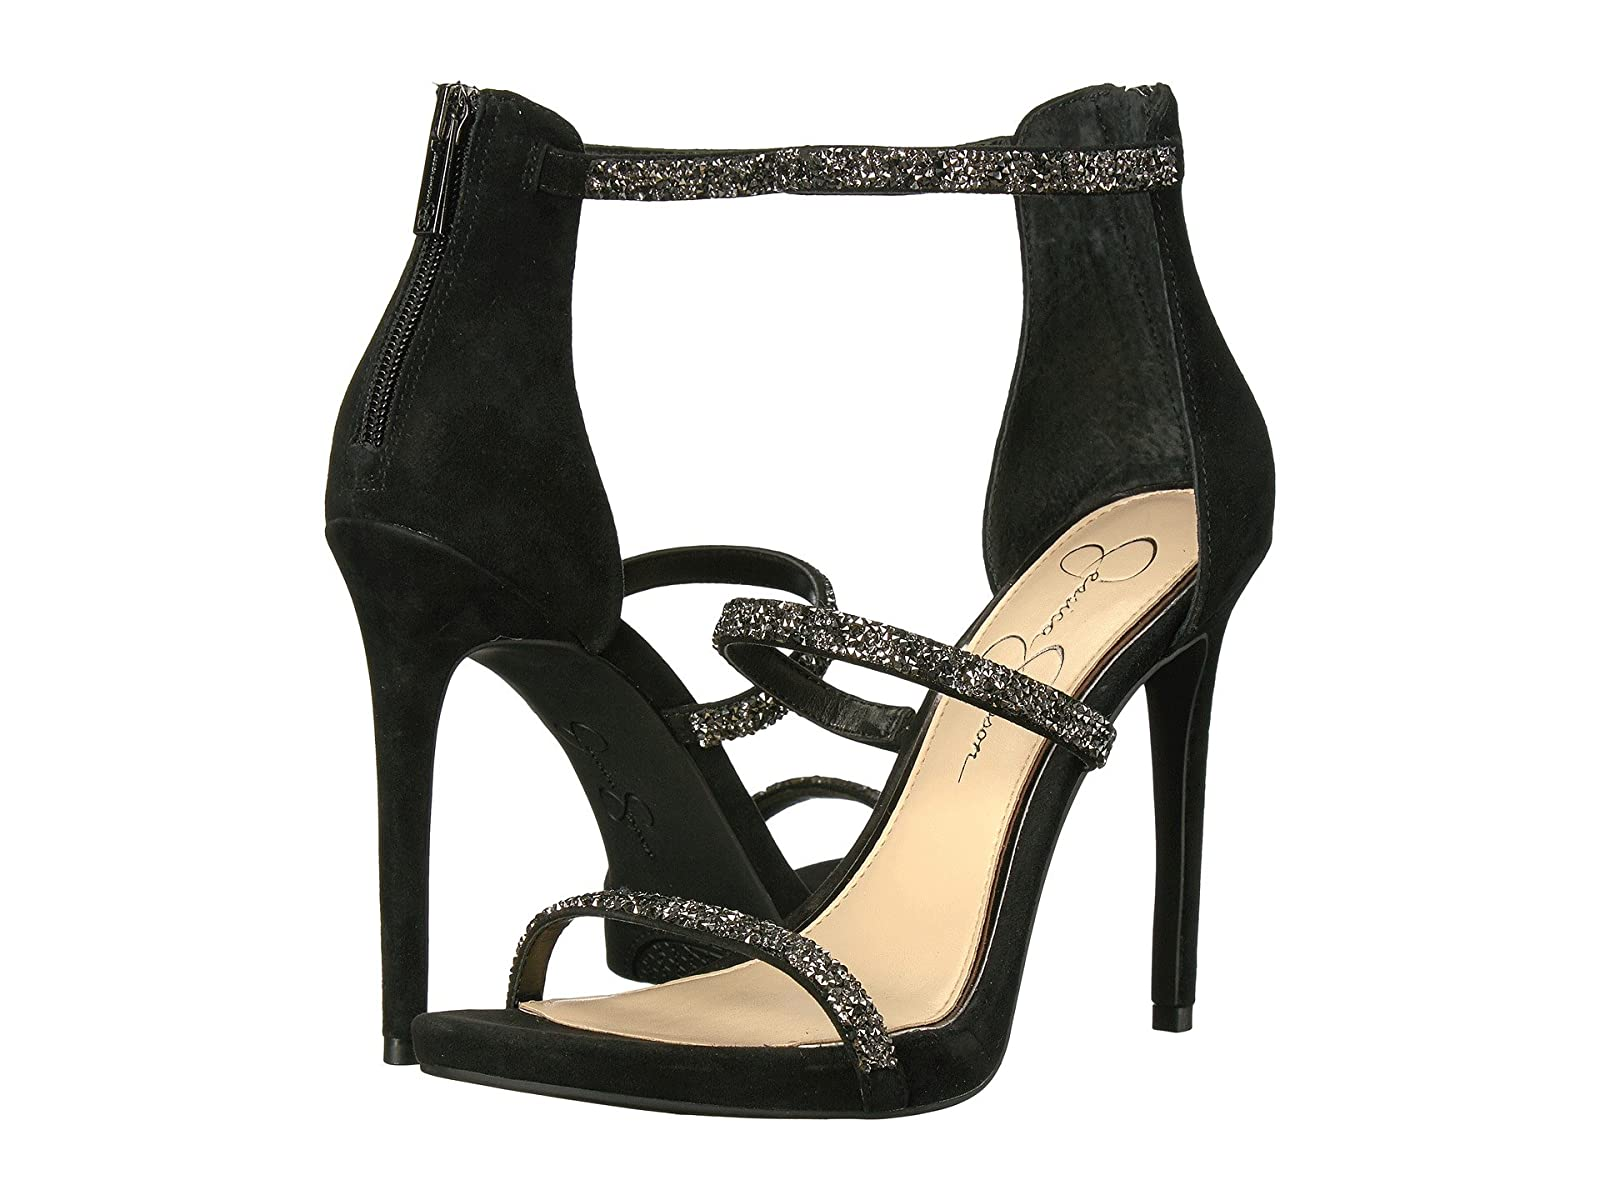 Jessica Simpson RenniaCheap and distinctive eye-catching shoes